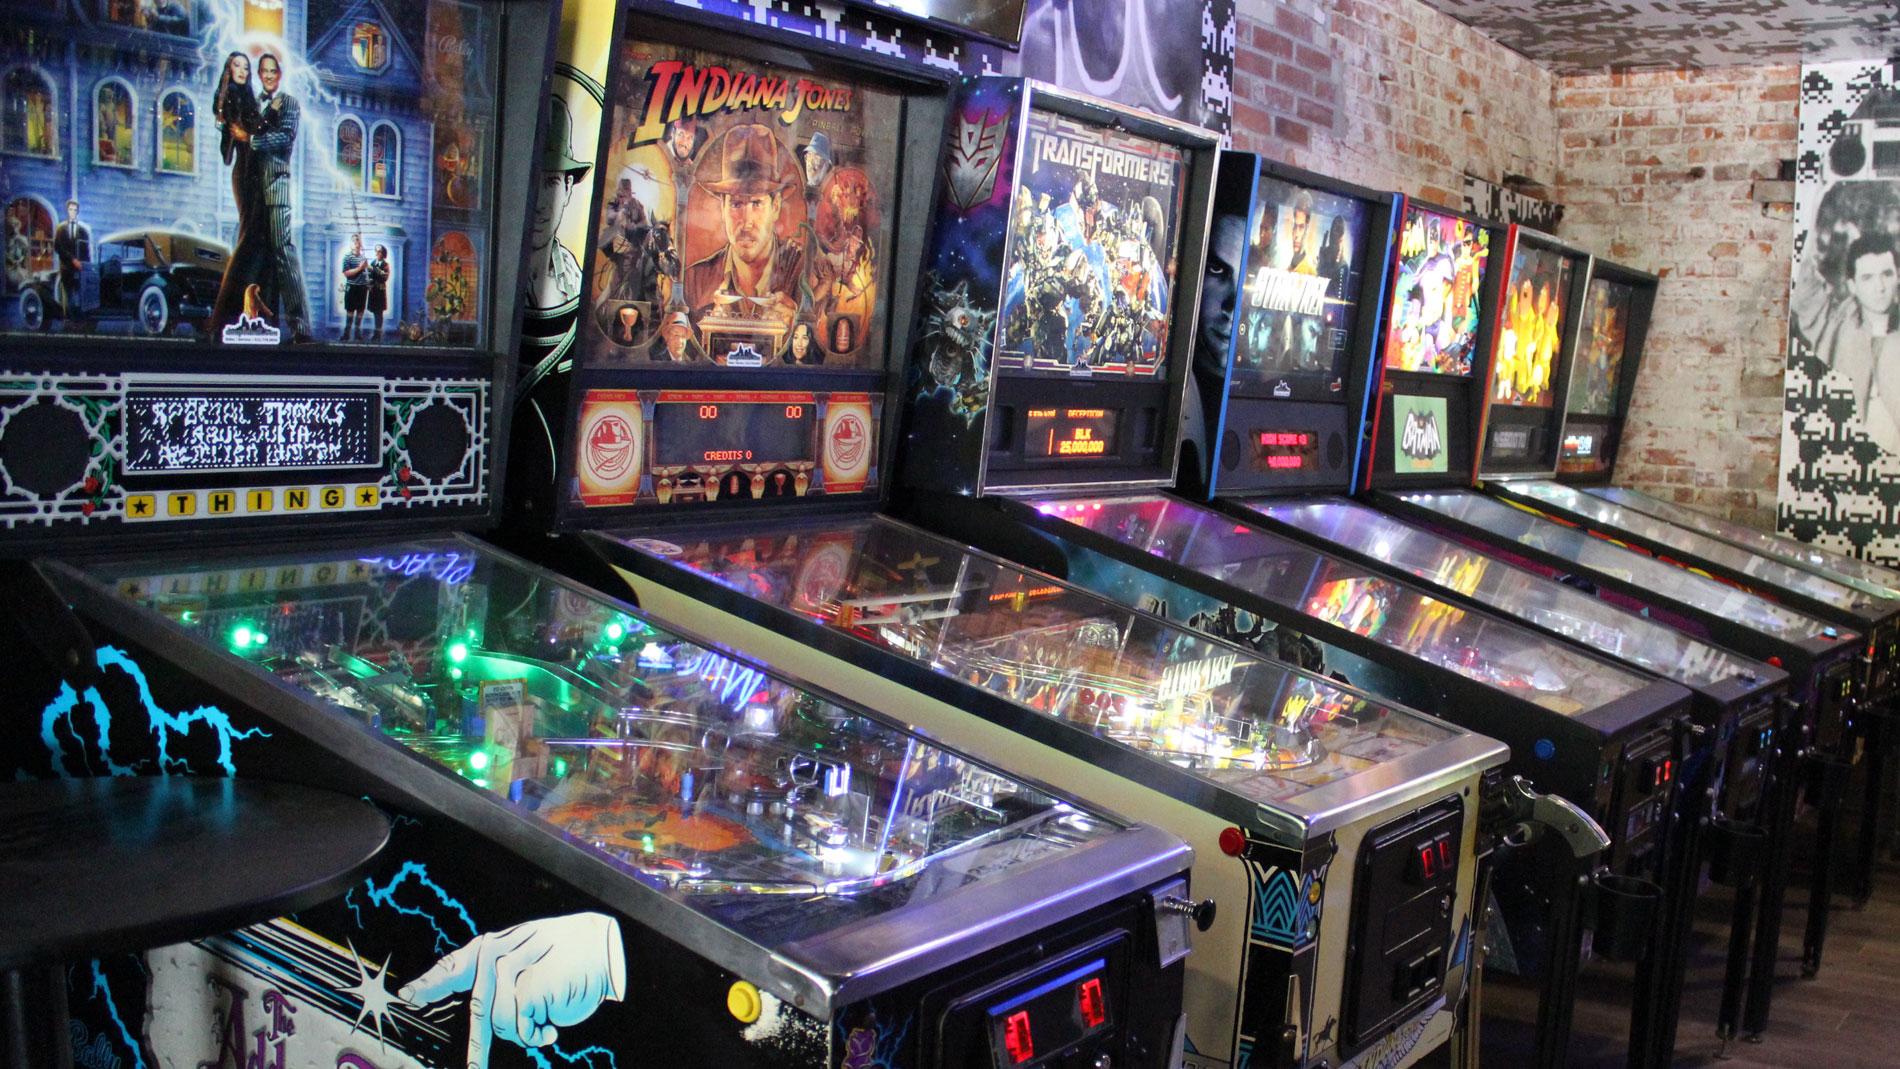 a row of pinball machines at a bar